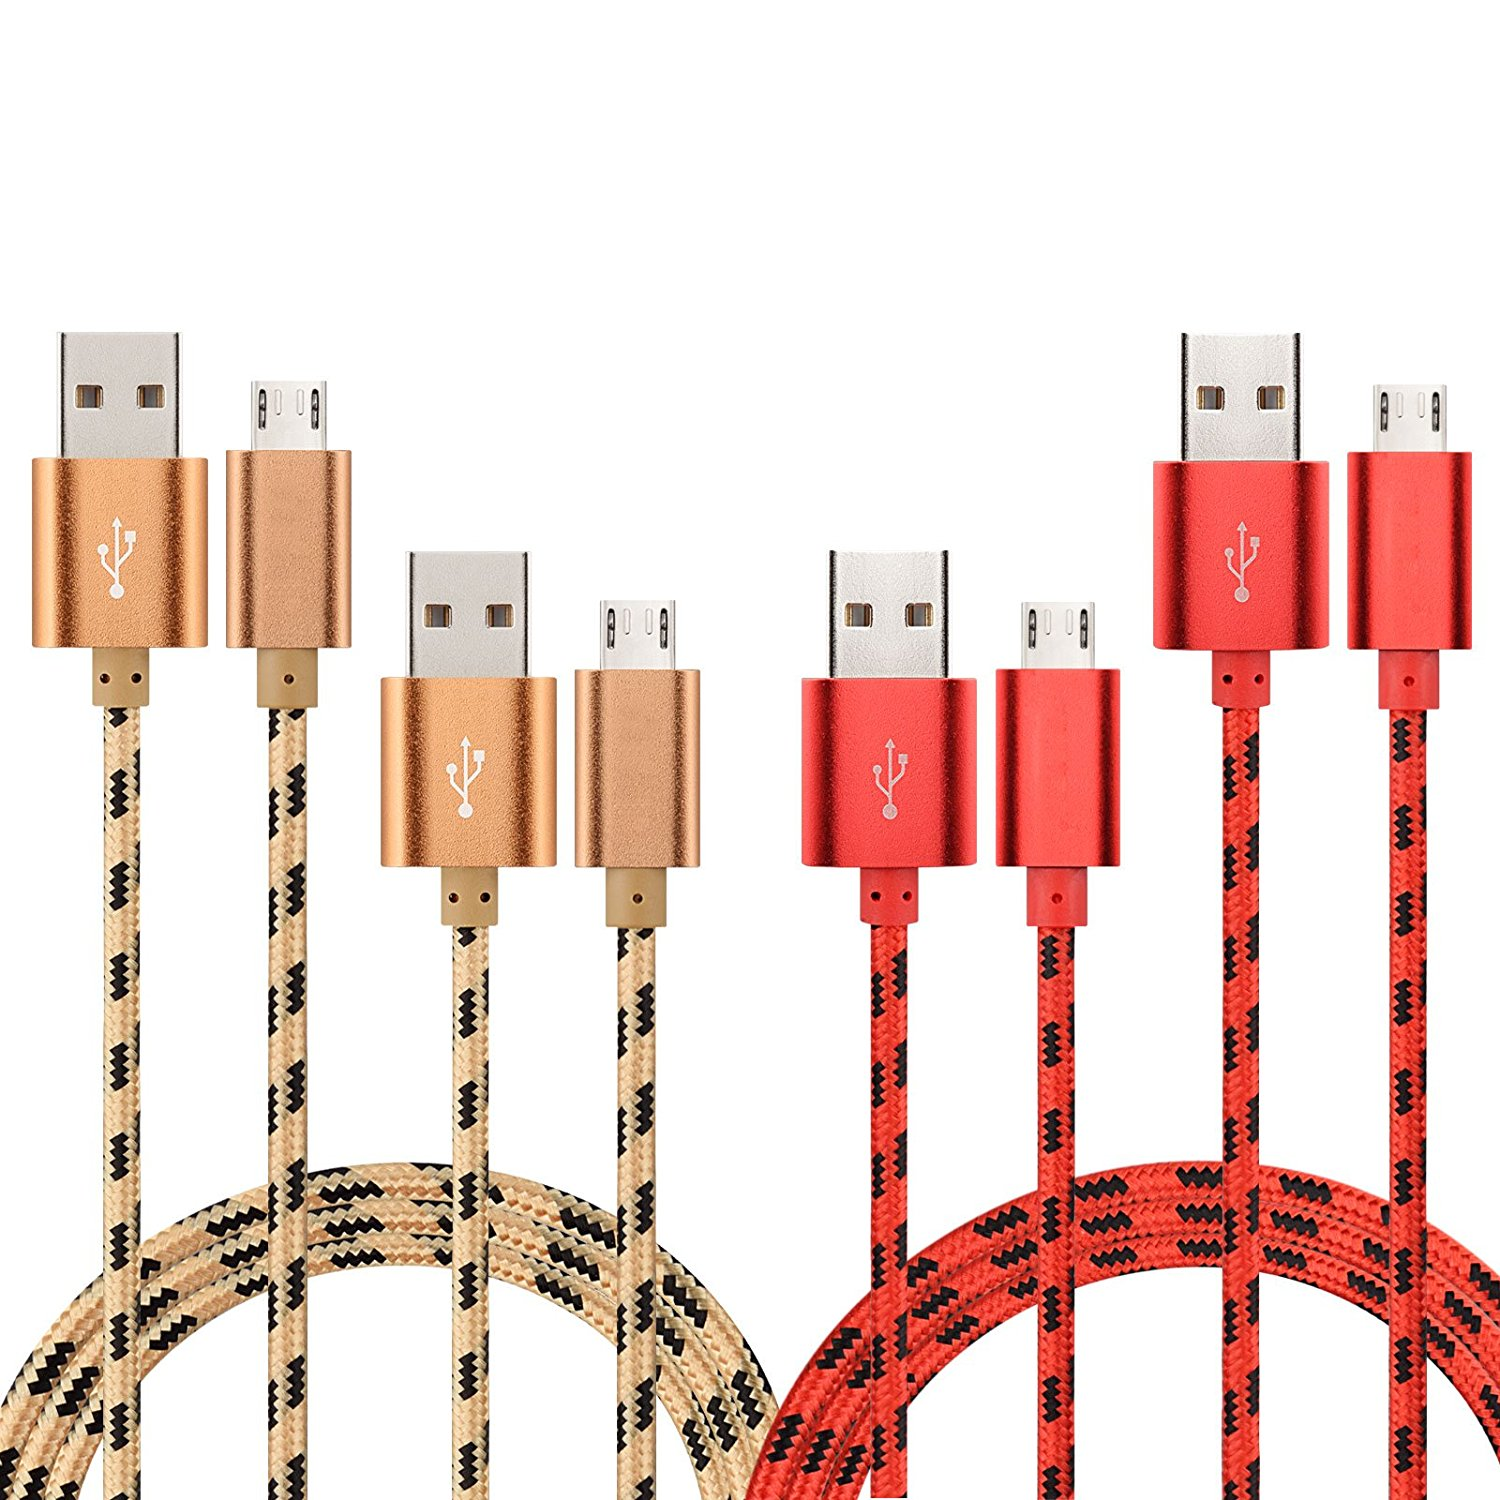 TOPSELL Micro USB Cable, 4Pack, 3.3ft/1m + 4.9ft/1.5m, Nylon Braided High Speed USB to Micro USB Charging Cables Android Charger Cord for Samsung, Nexus, Motorola,HTC, LG, Tablet and More (Gold, Red)